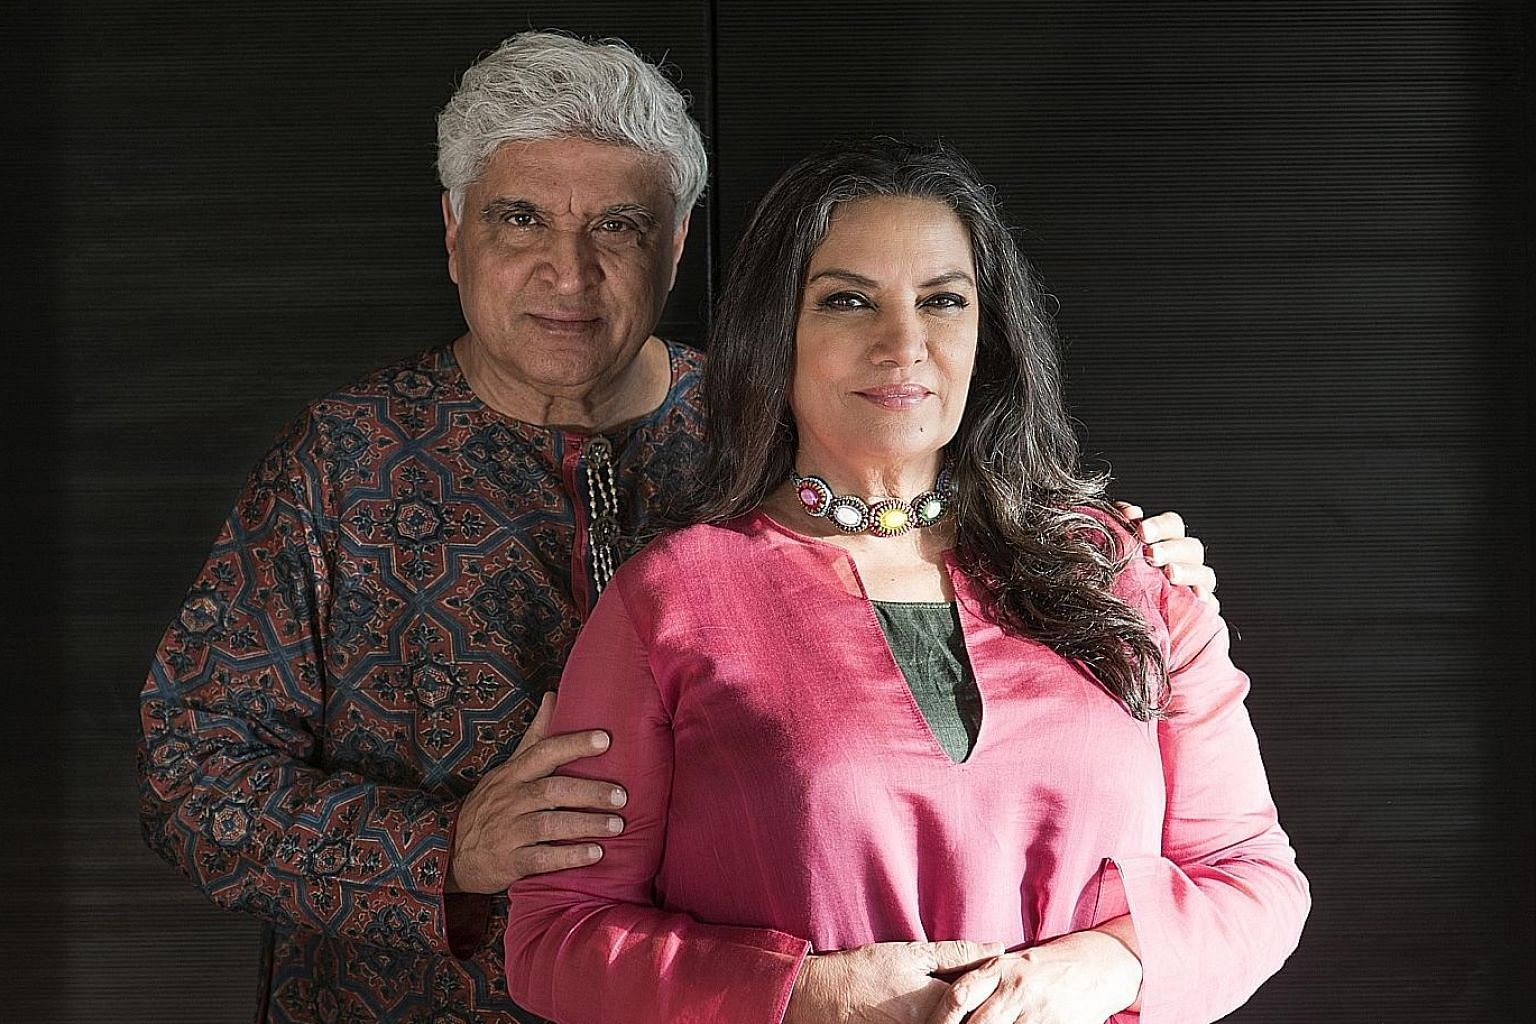 Poet Javed Akhtar and actress Shabana Azmi will be presenting Rhymes Of Love at the Singapore International Festival of Arts.